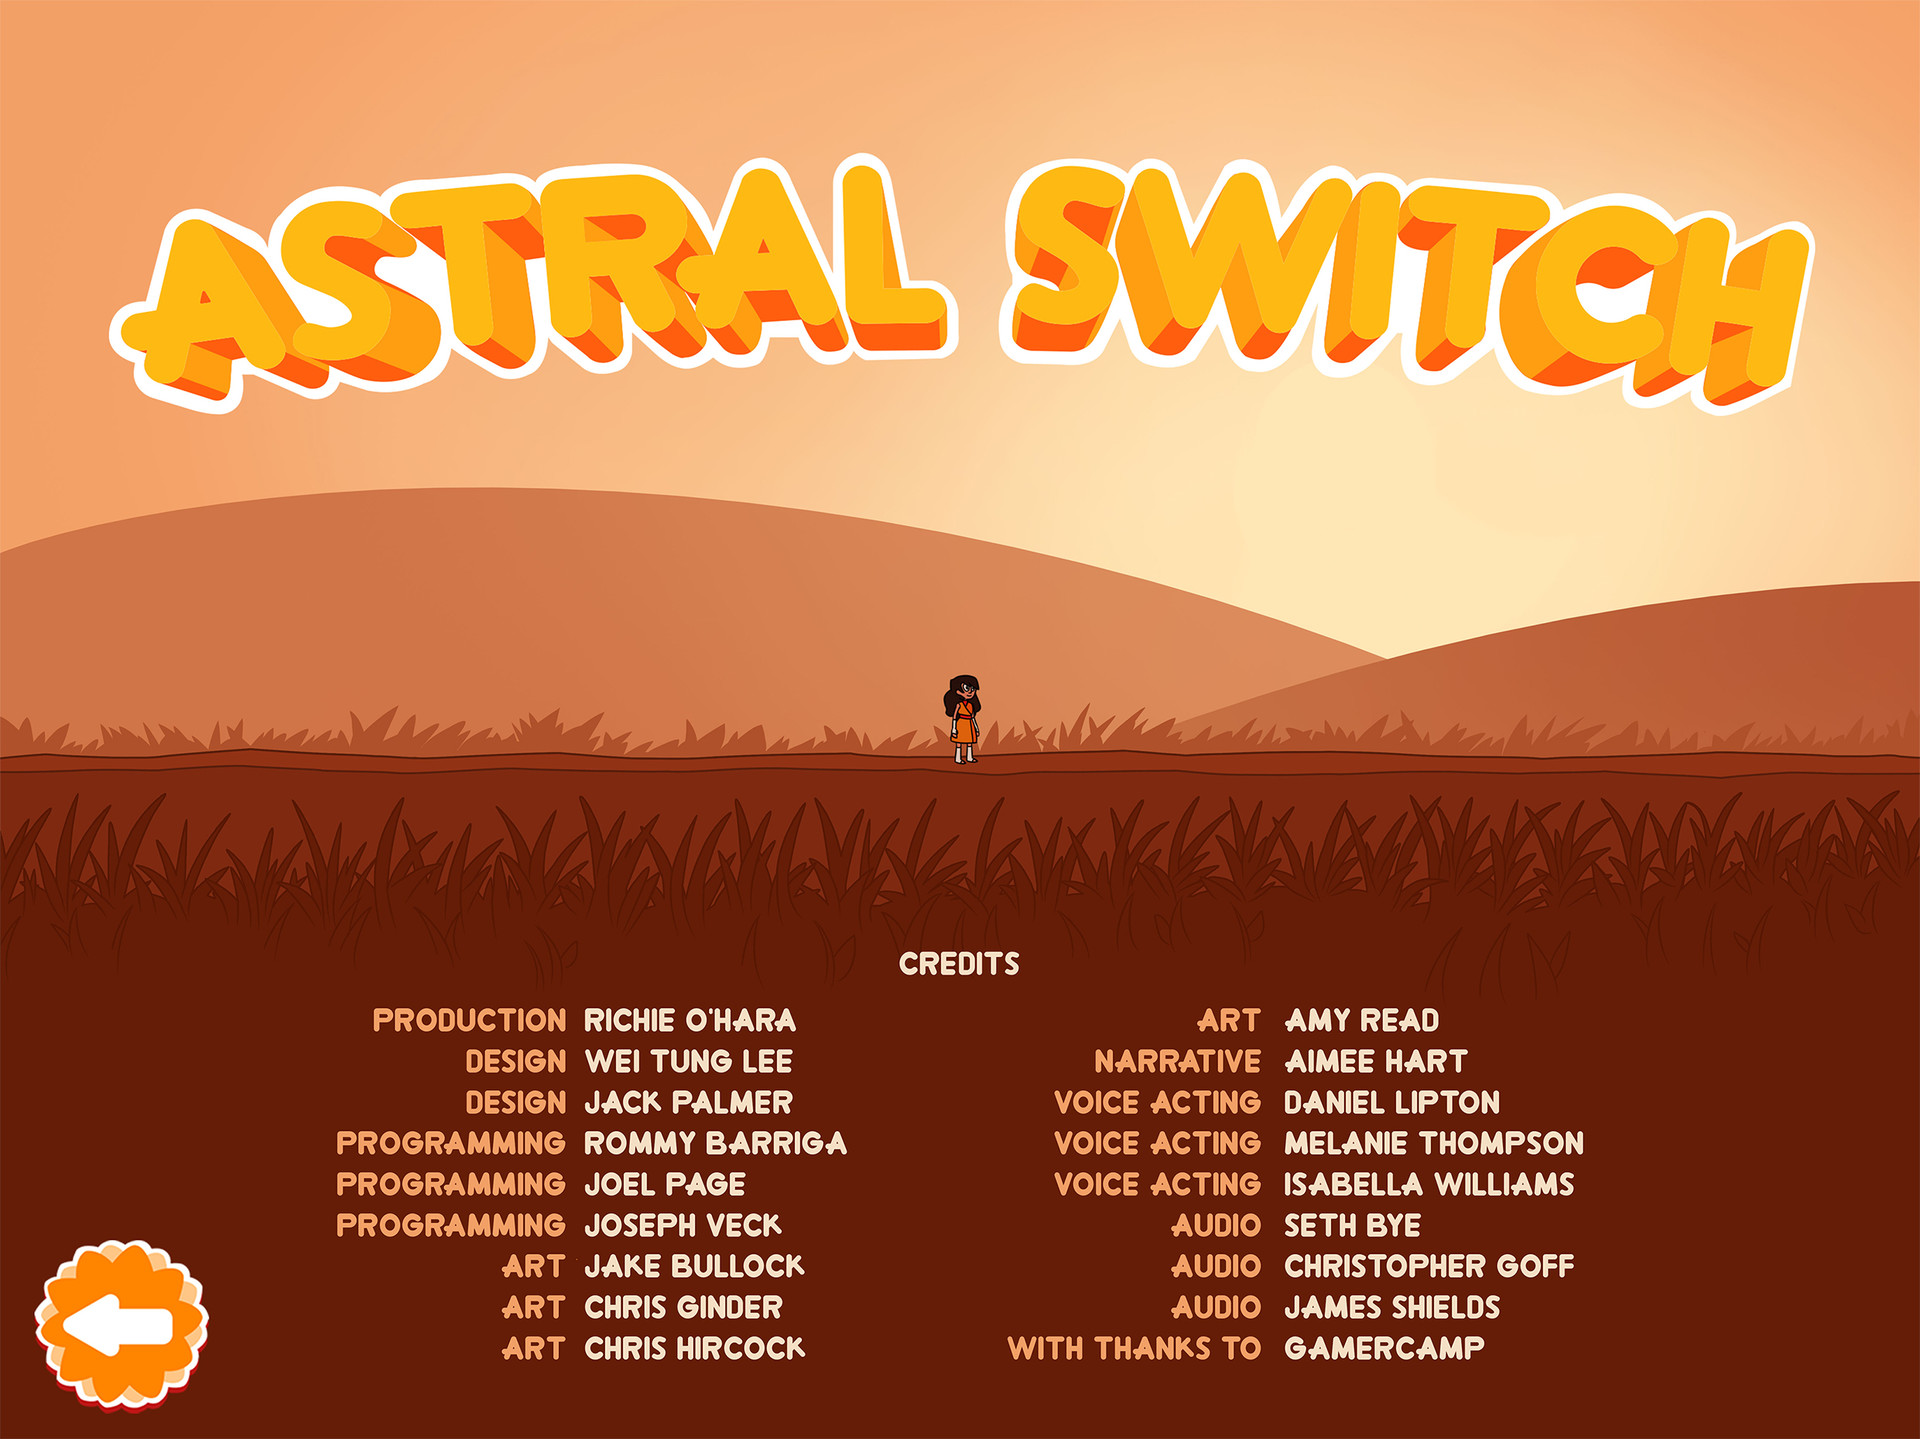 Jake bullock astralswitch21 credits